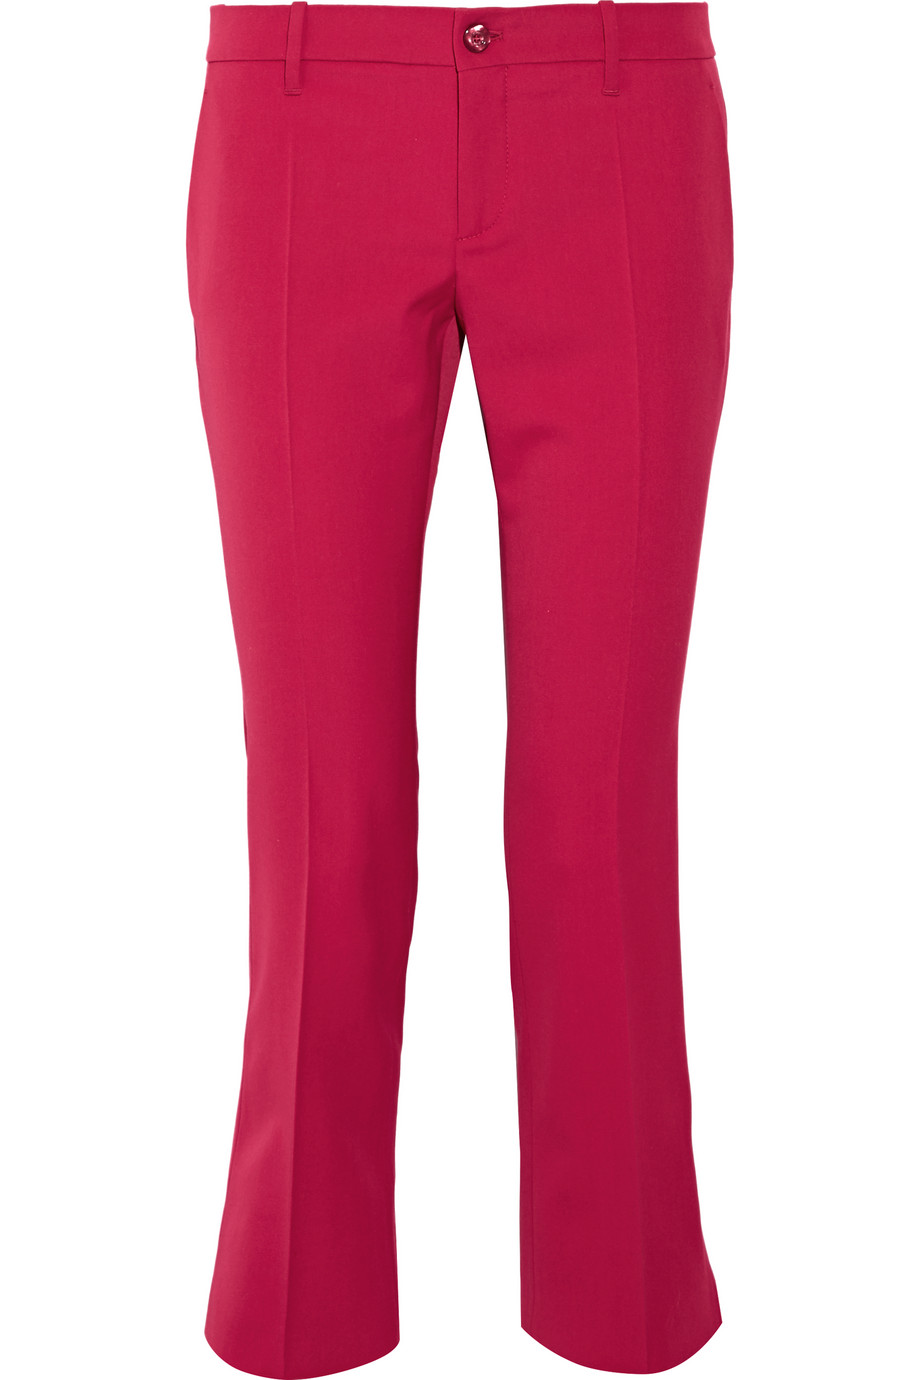 Gucci Cropped Stretch Wool and Silk-Blend Flared Pants, Magenta/Pink, Women's, Size: 46